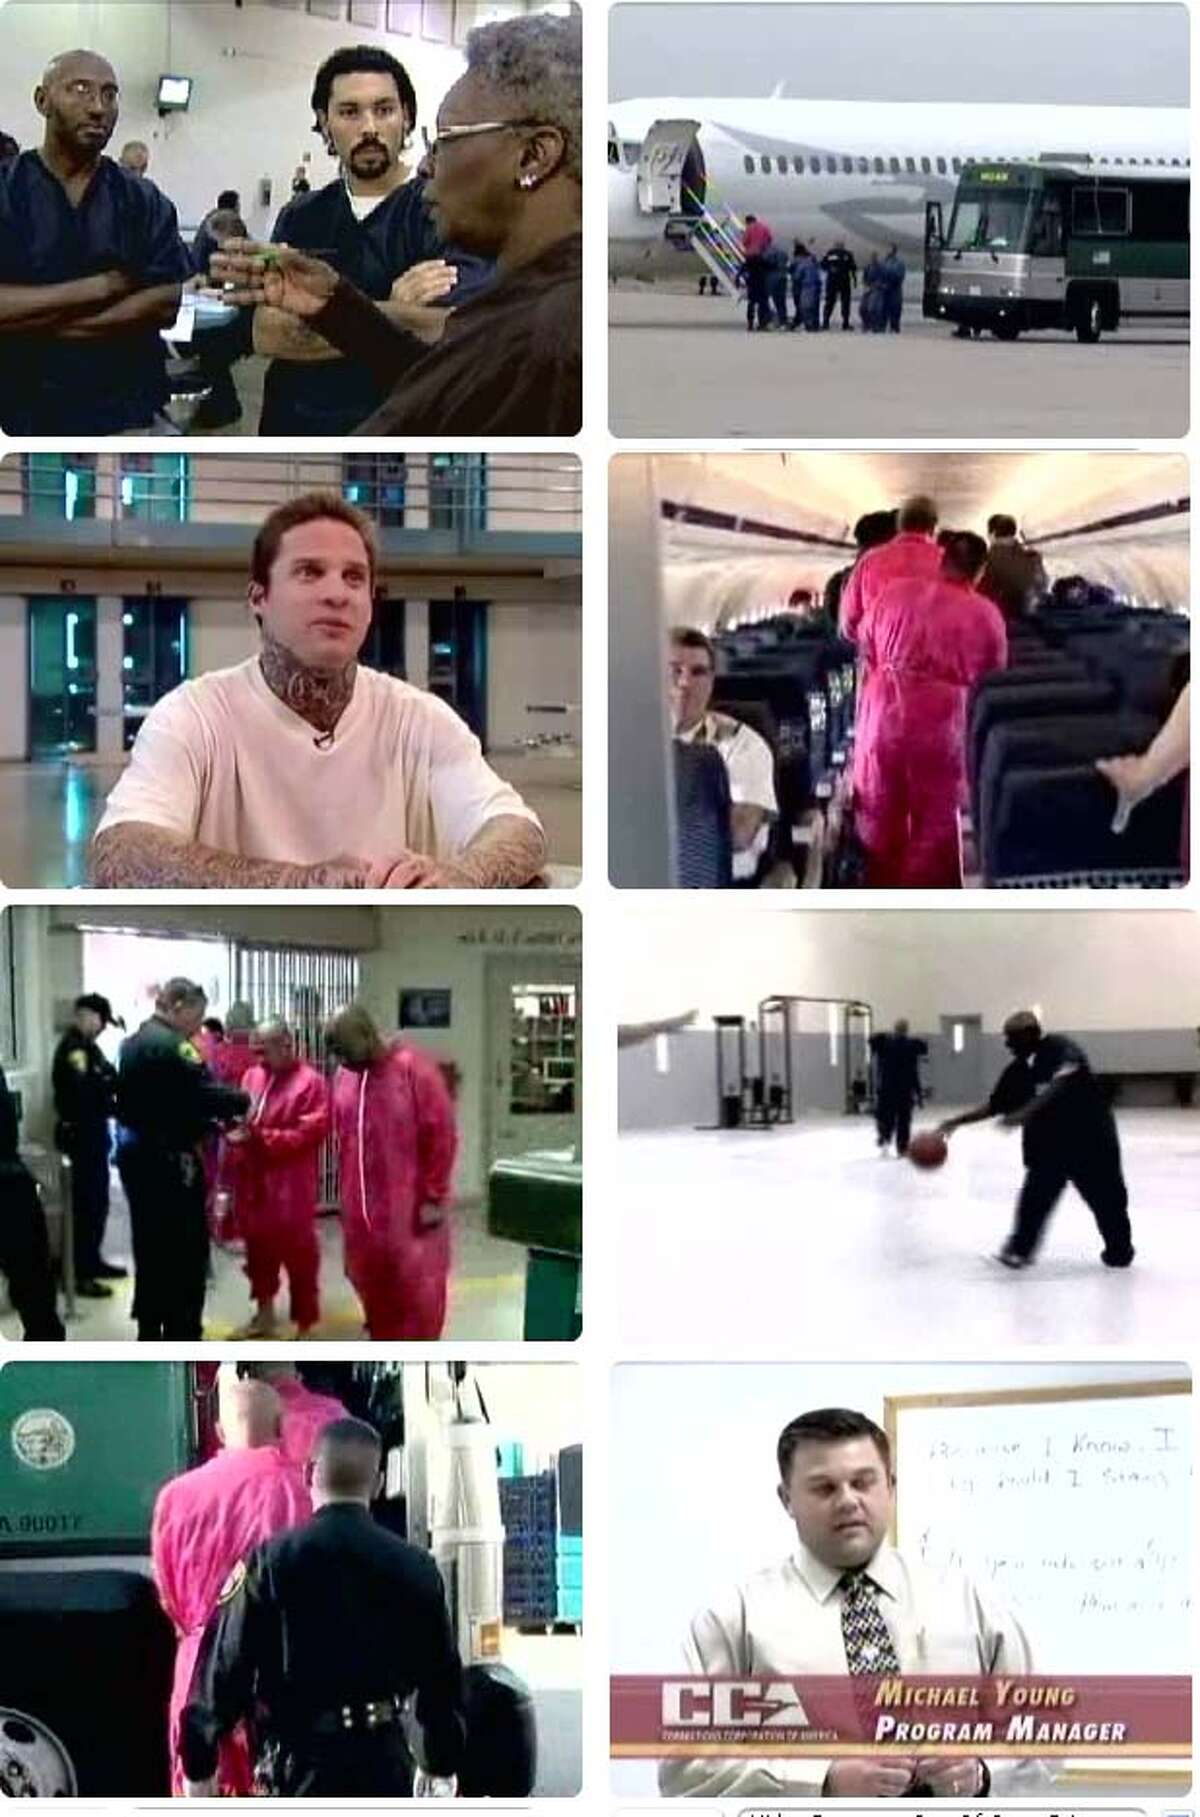 These images taken from video show inmates and officials appearing in a promotional DVD presented to California prisoners. Images courtesy of CBS5.com